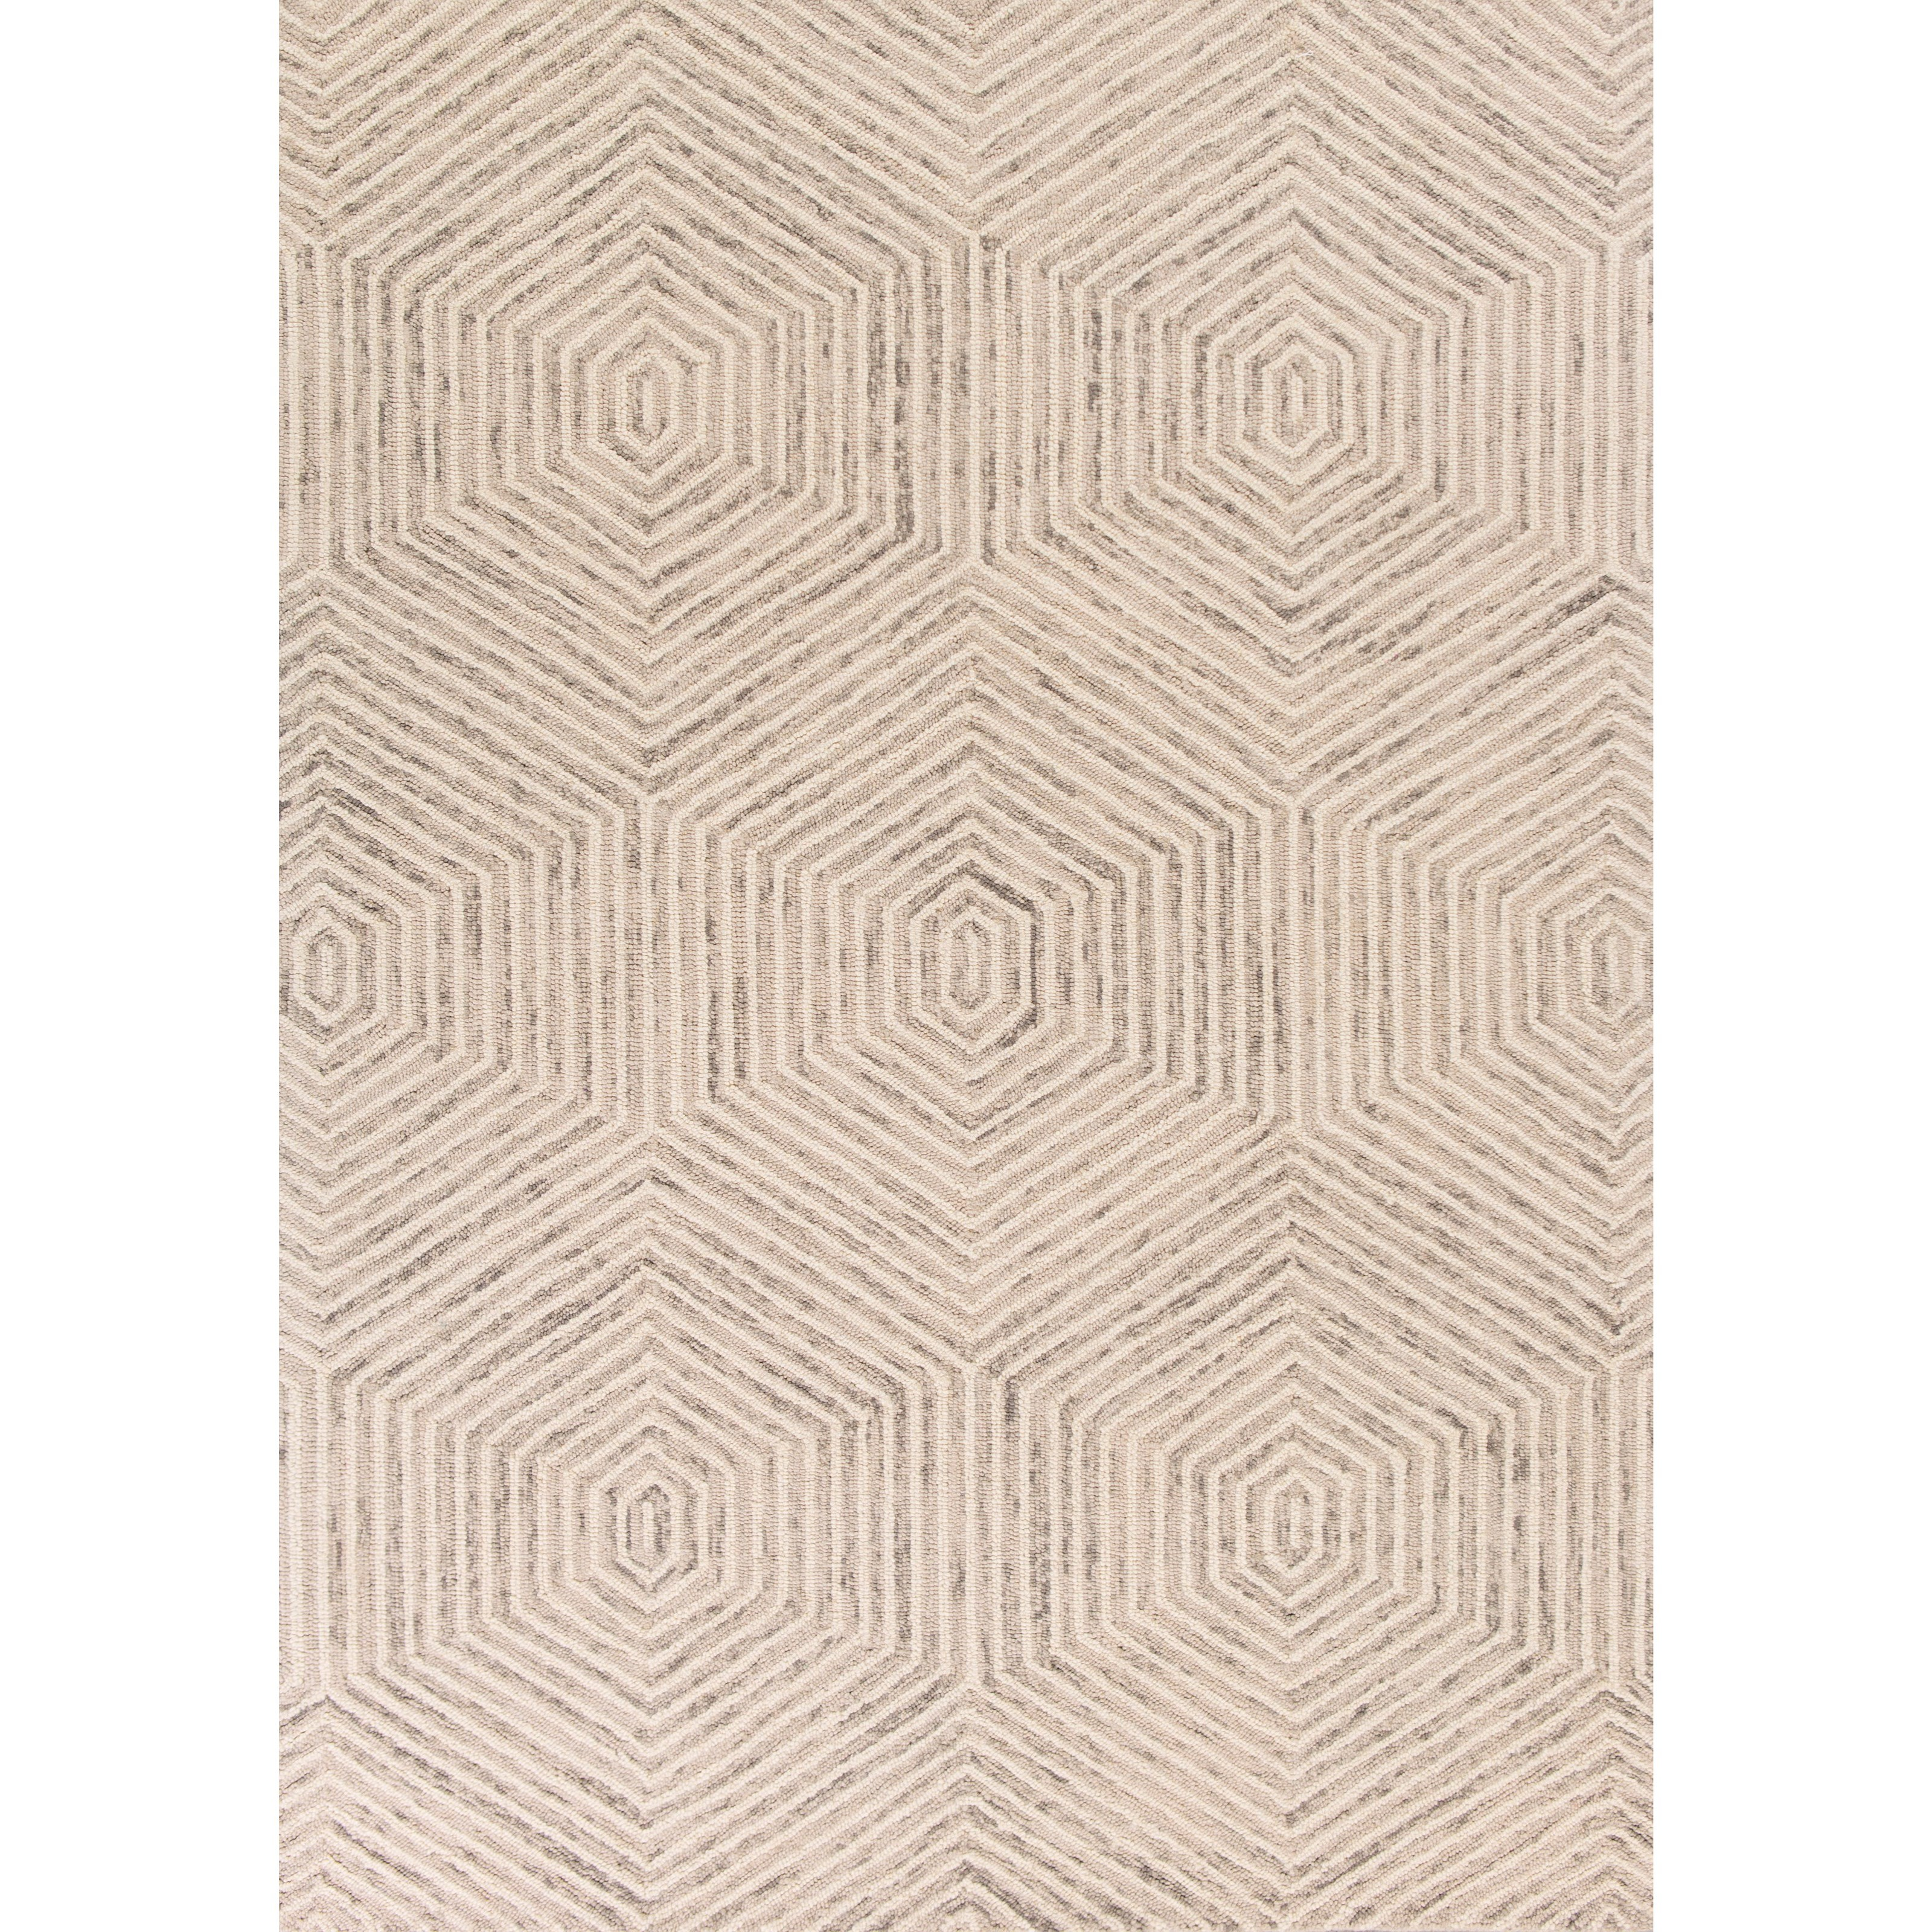 """Gramercy 2'3"""" X 3'9"""" Ivory Honeycomb Area Rug by Kas at Zak's Home"""